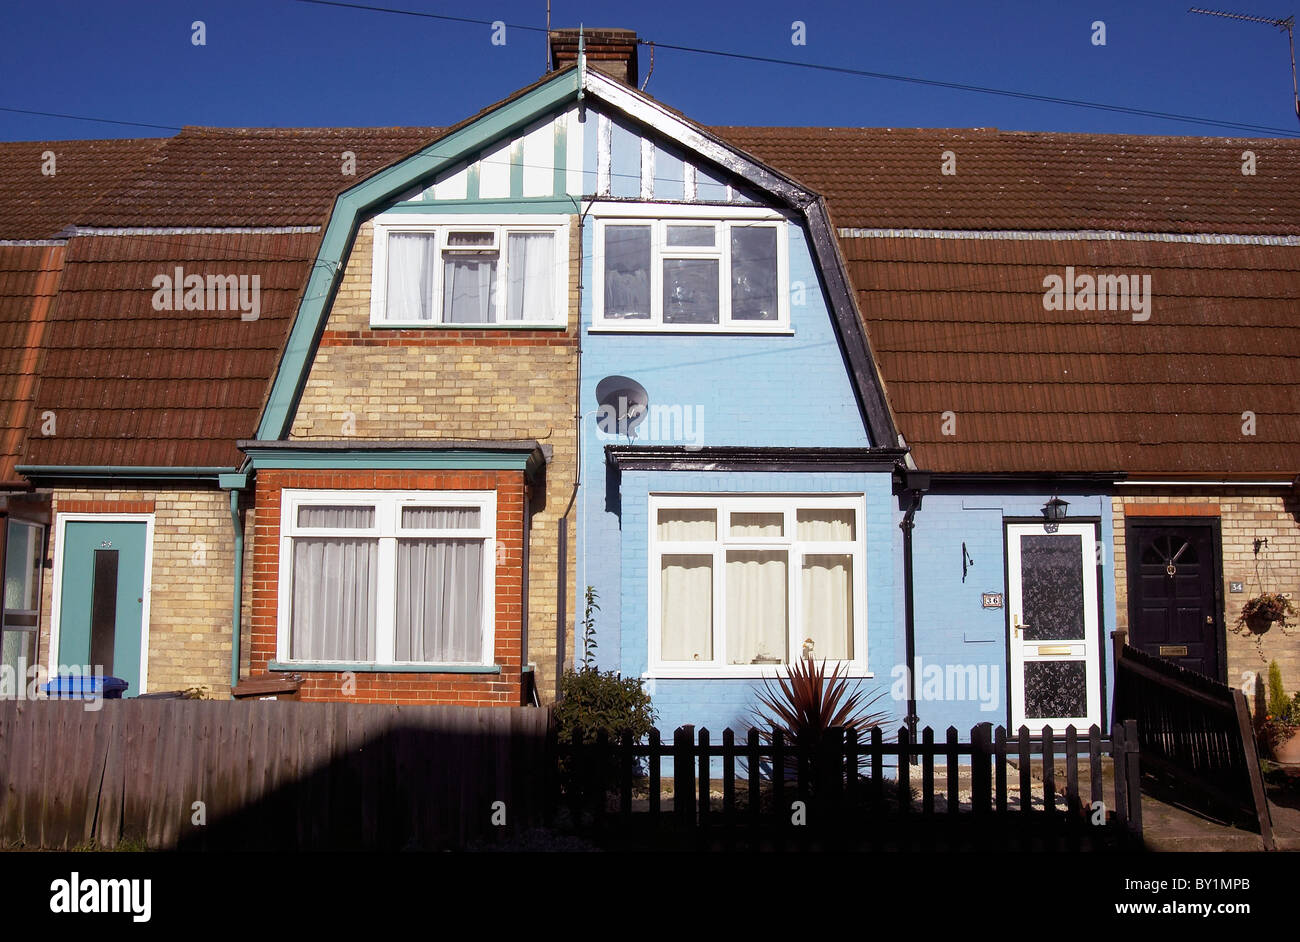 Council housing East London - Stock Image